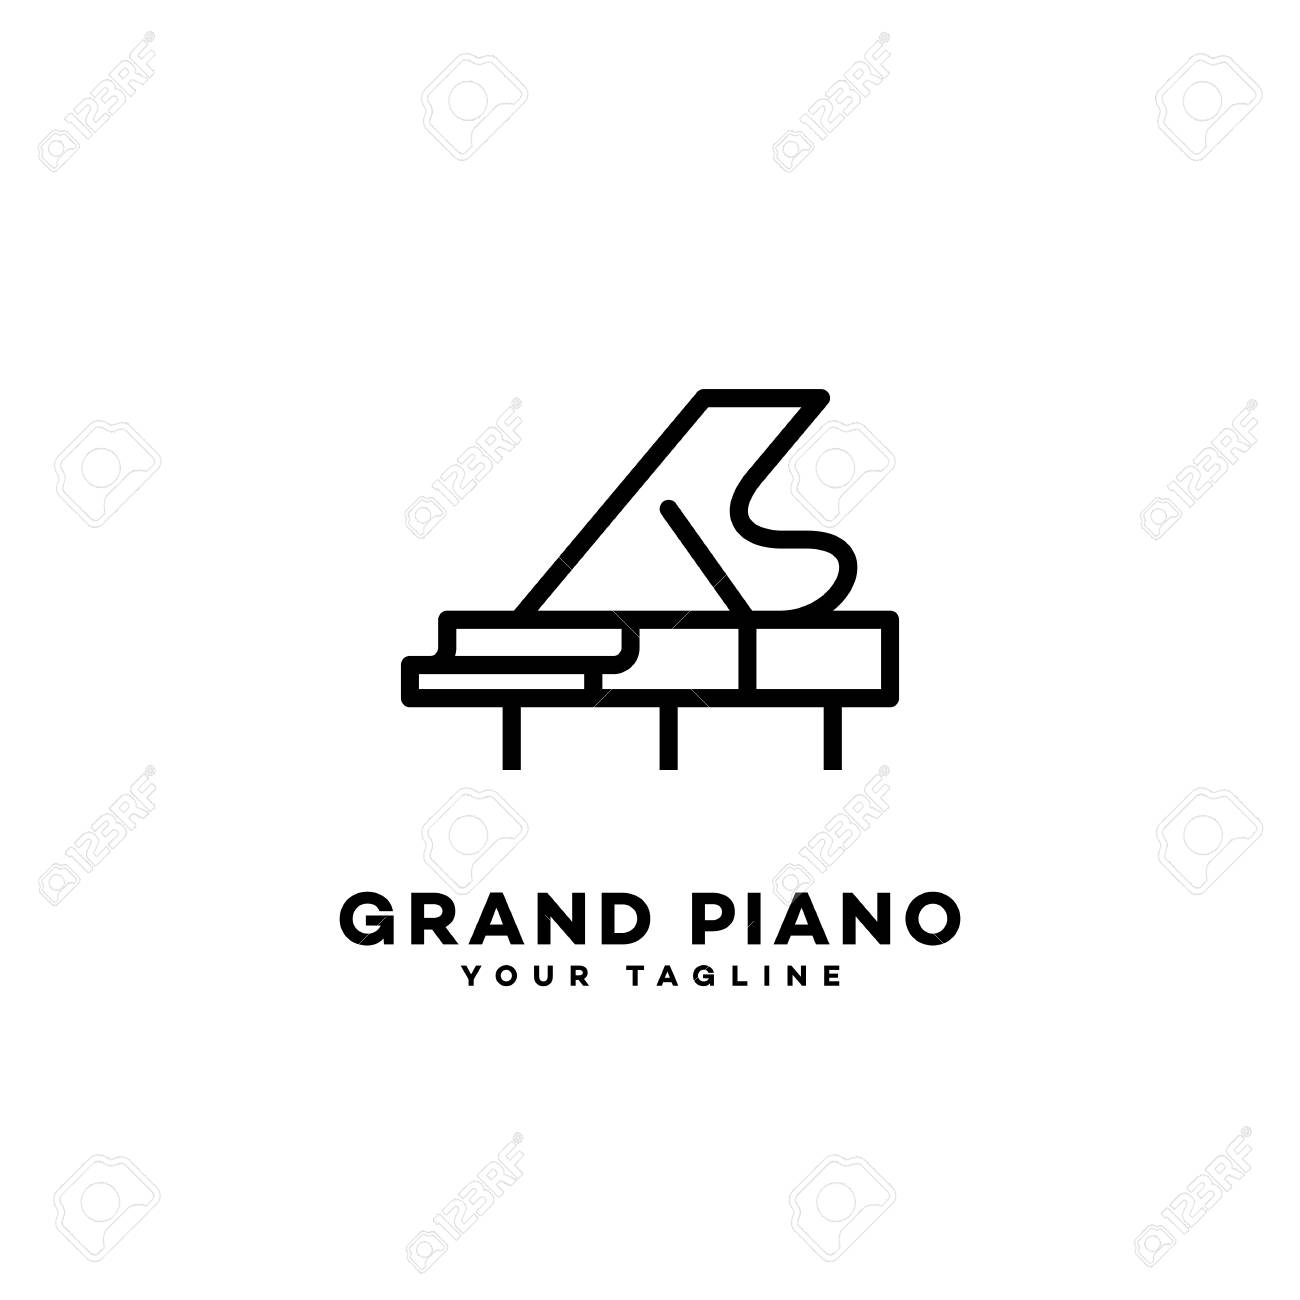 grand piano logo template design in outline style vector